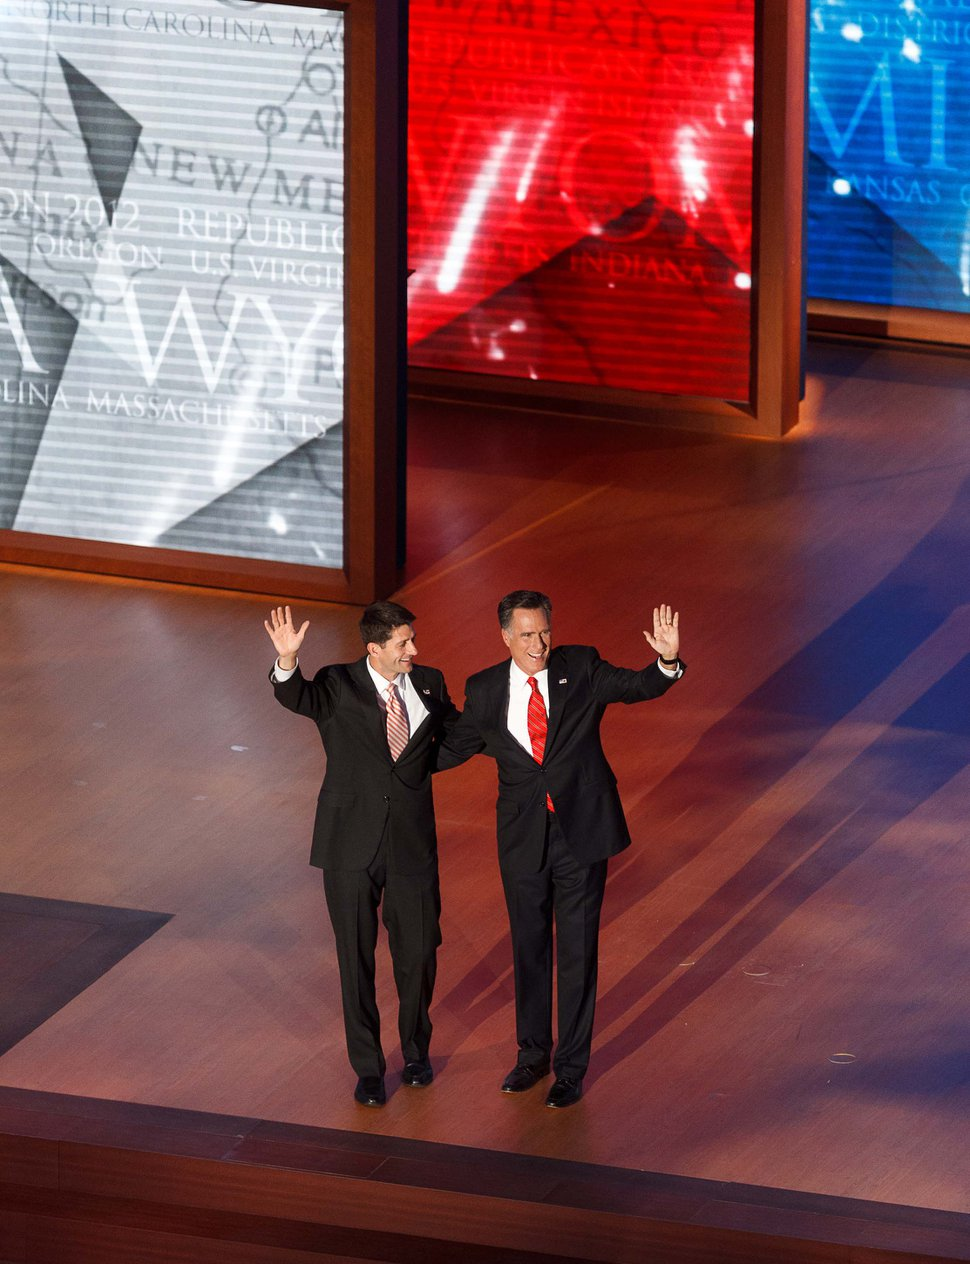 (Trent Nelson | Tribune file photo) Mitt Romney and running mate Paul Ryan wave at the close of the Republican National Convention in Tampa, Florida on August 30, 2012.